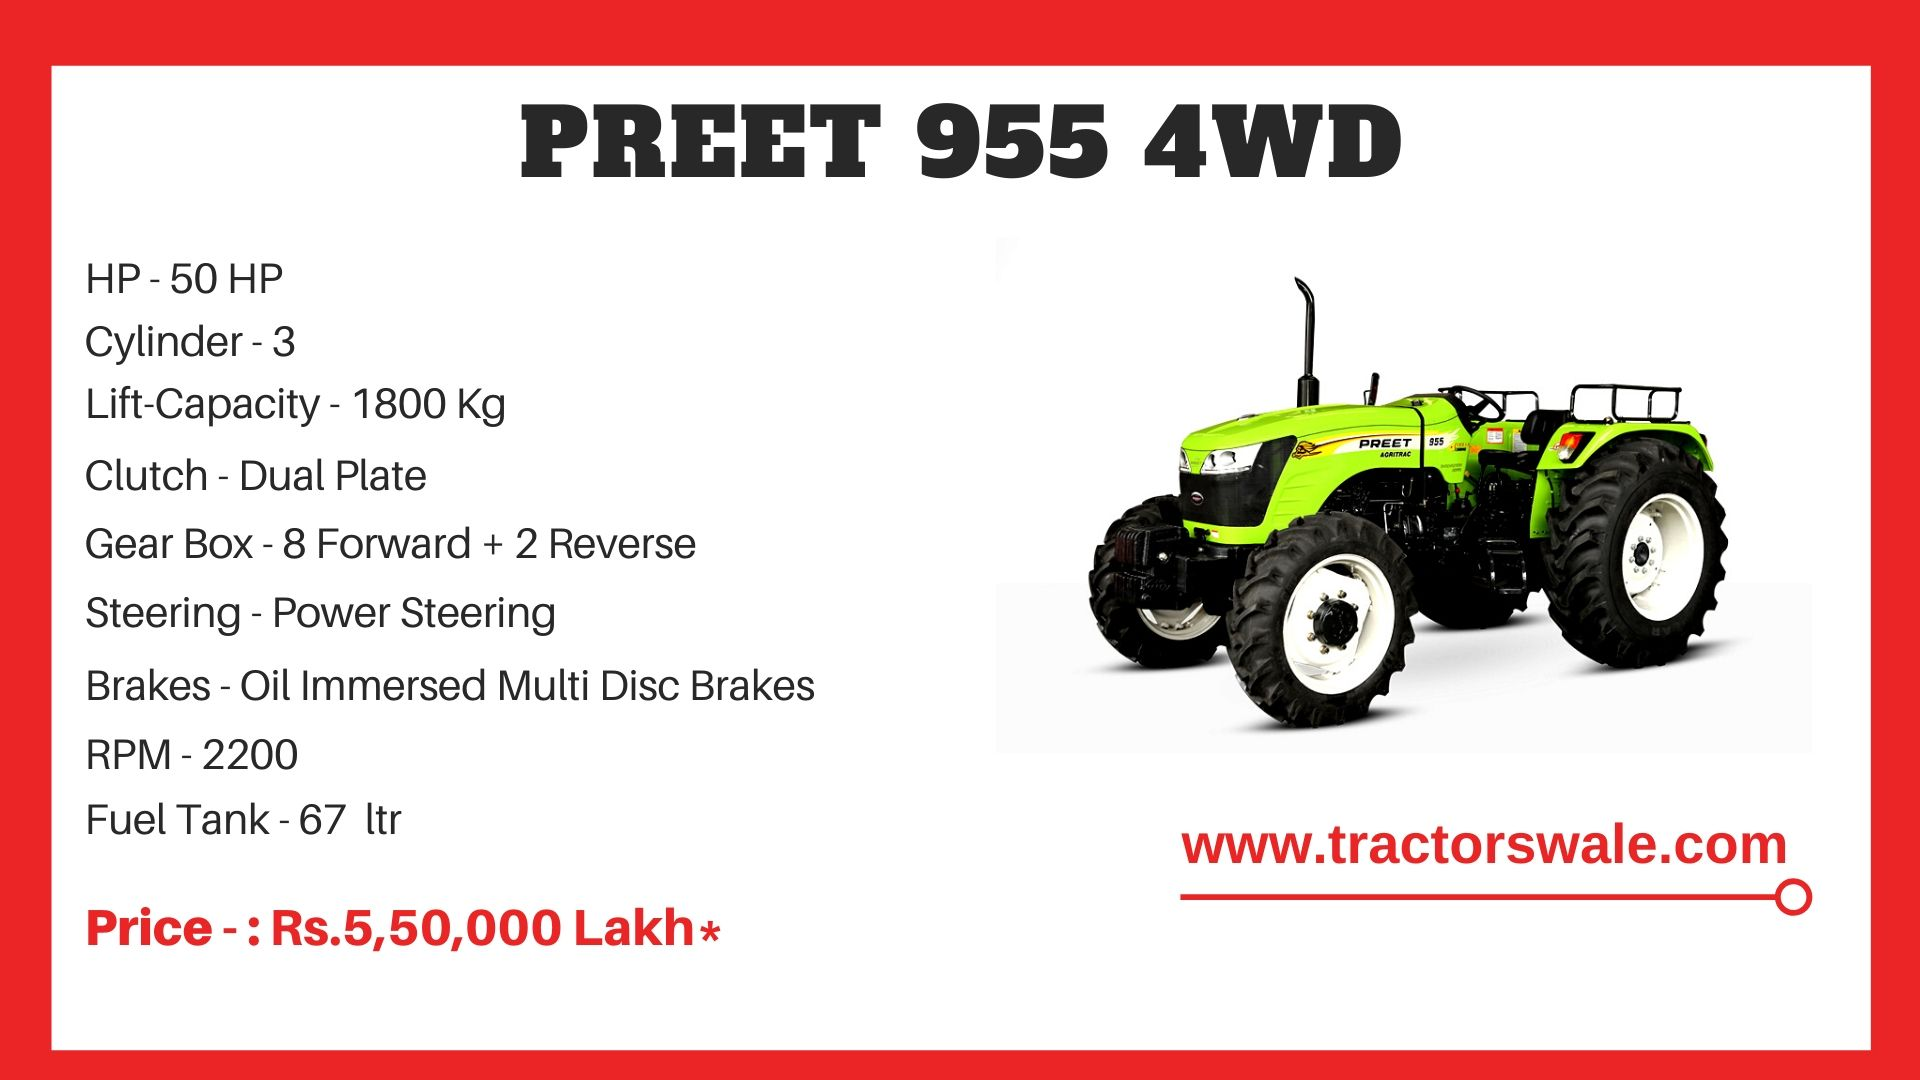 Preet 955 4WD Tractor Price